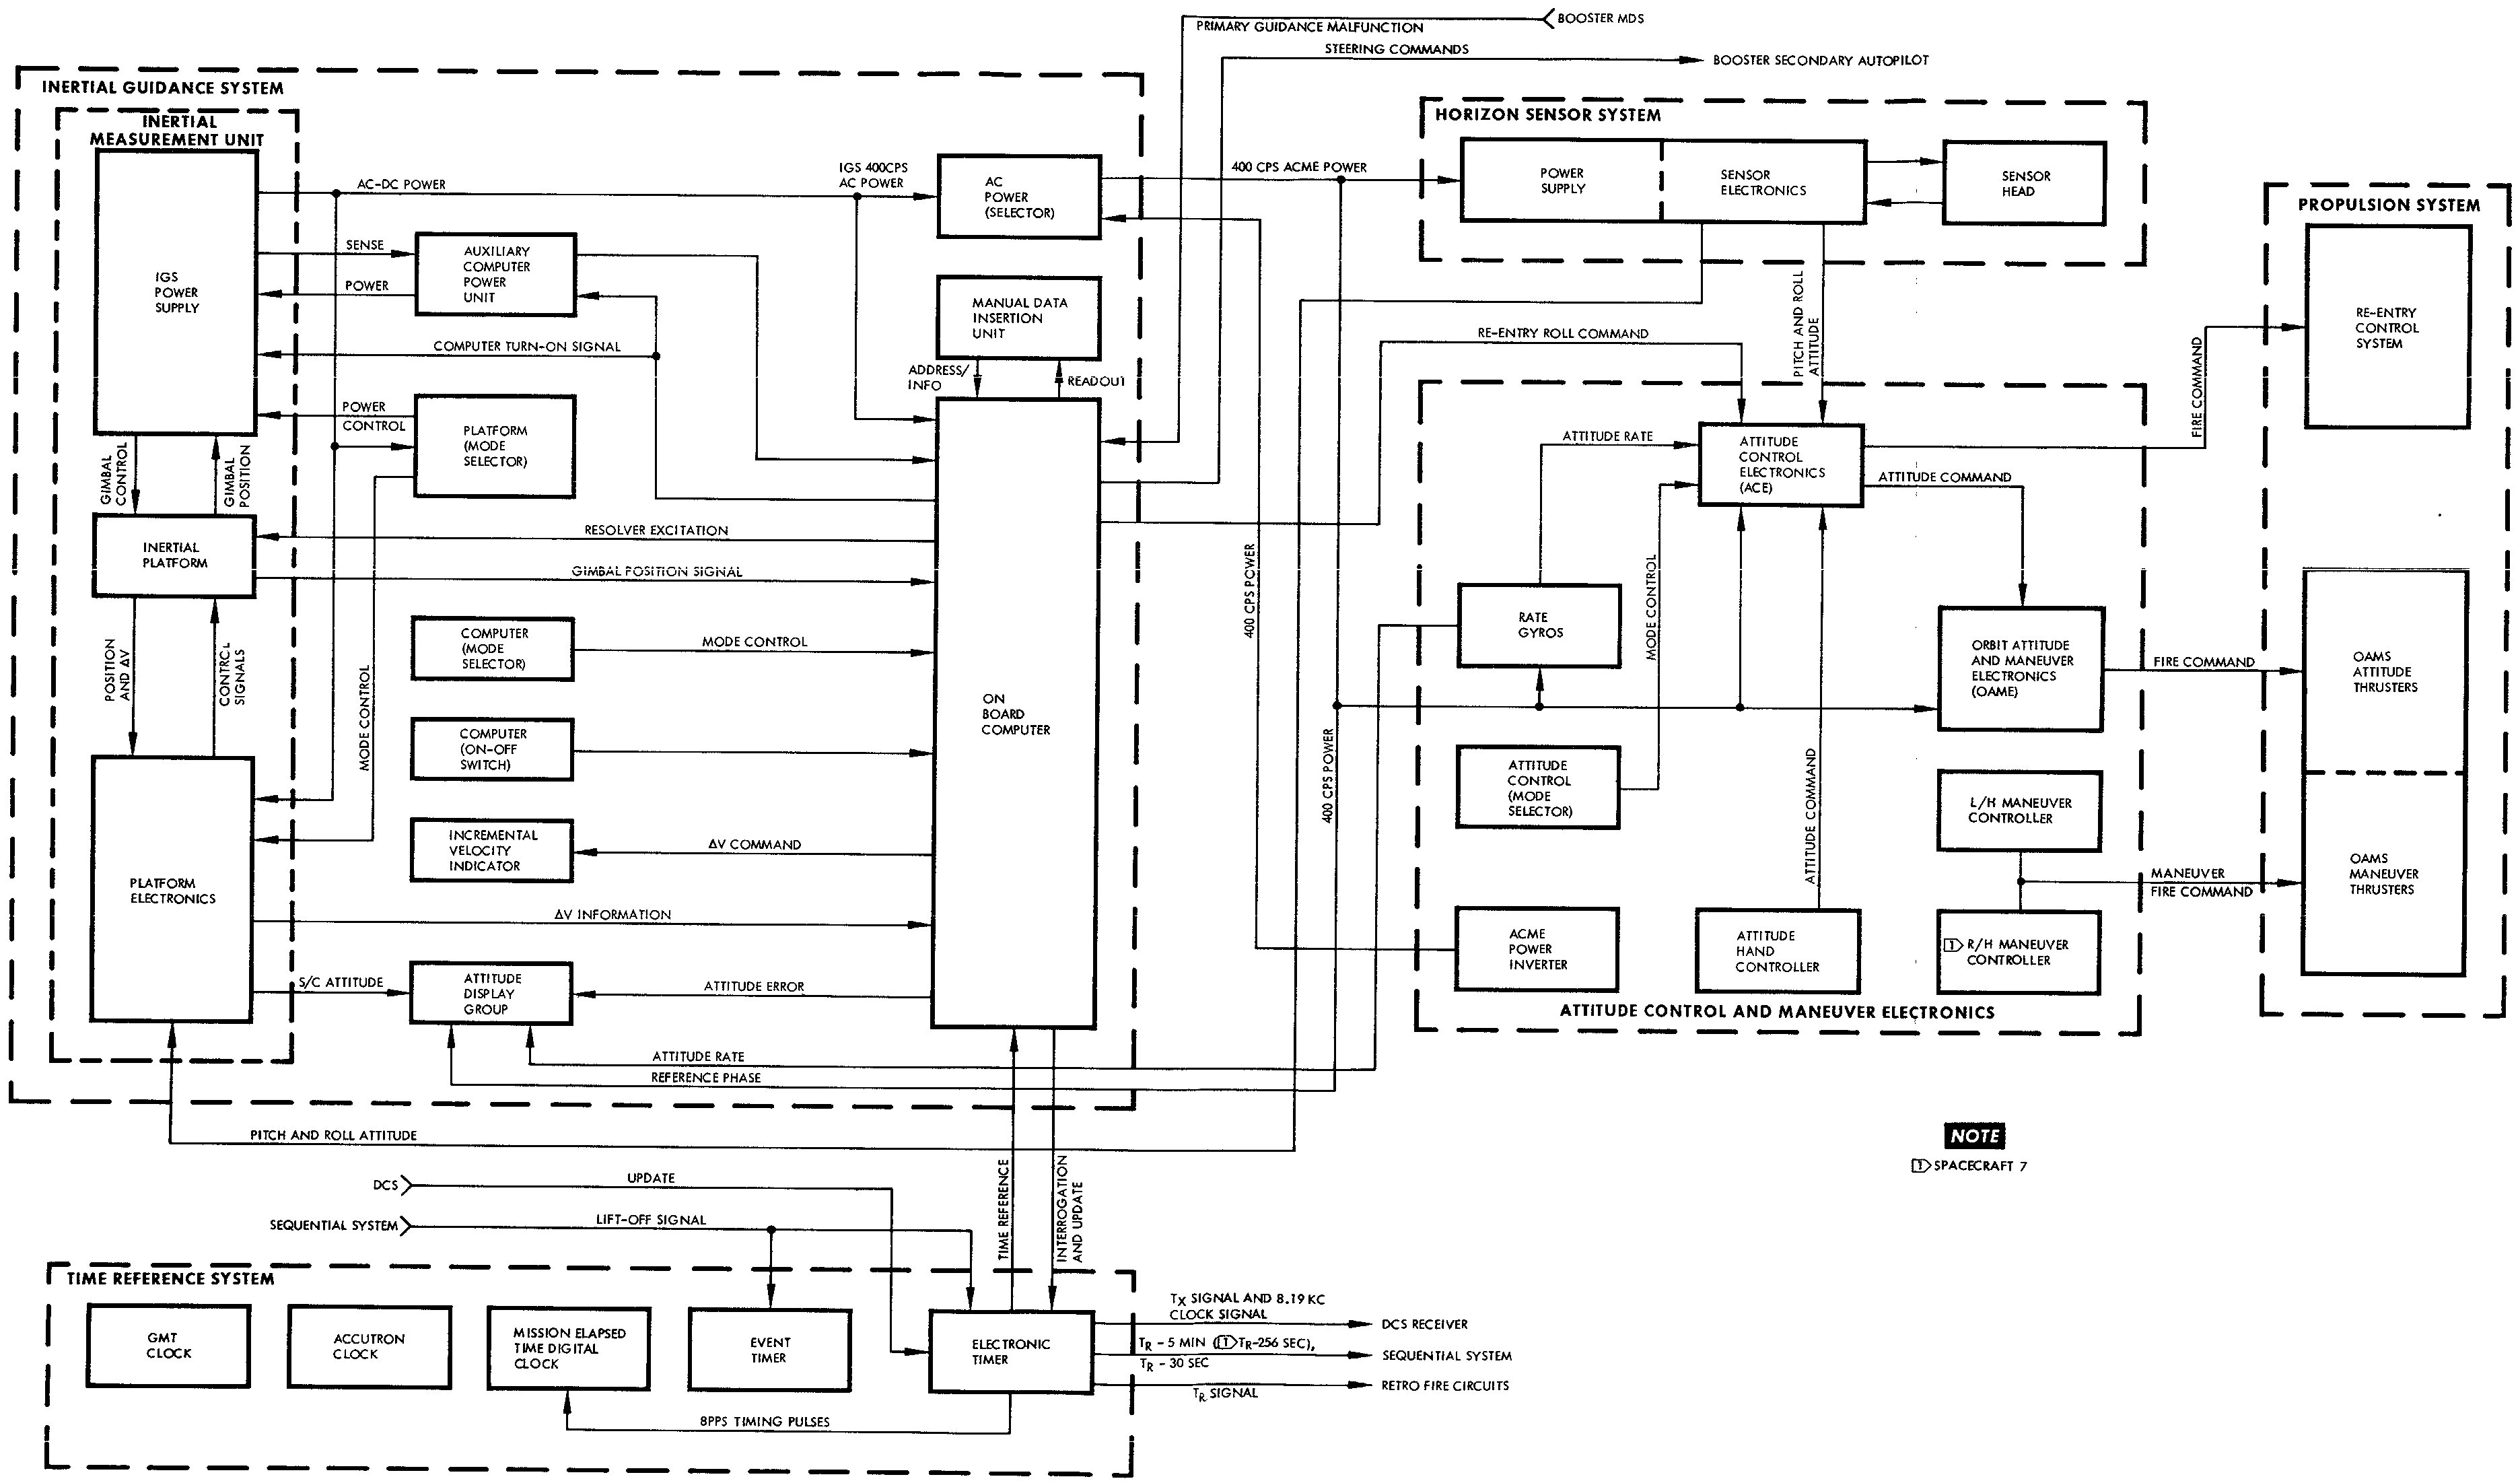 Dcs Wiring Diagram Pg Architecture Image Perko 8501 Block For Computer The Explain Of Vidim